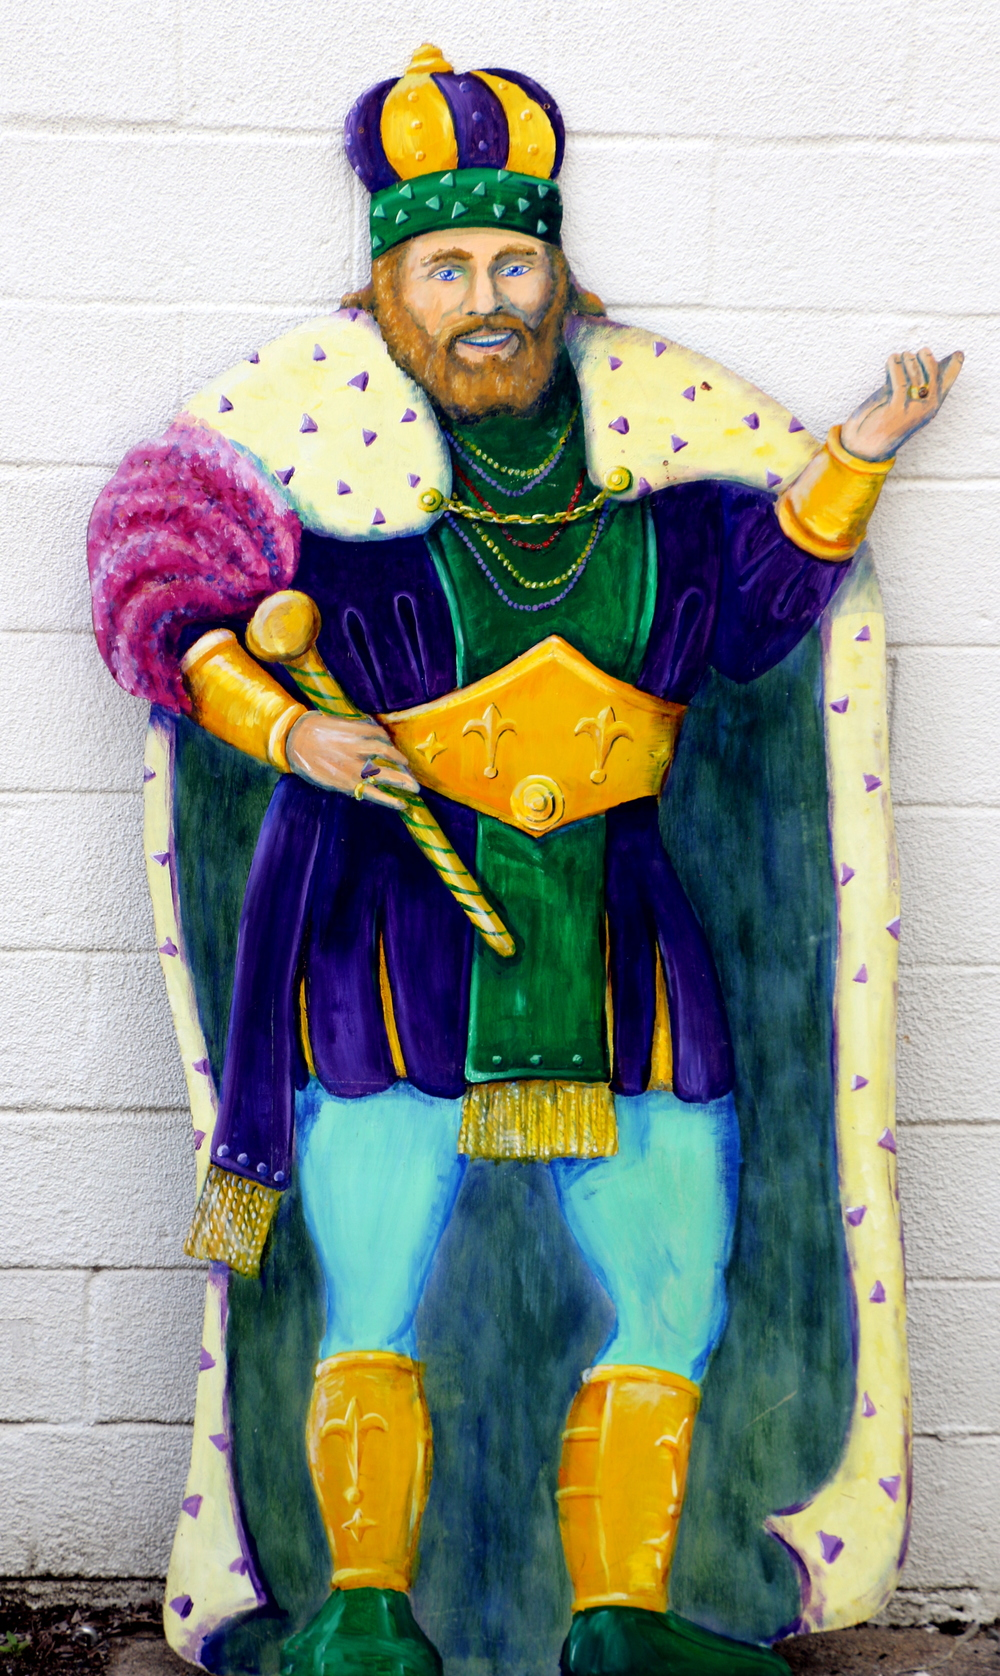 King of the Parade:  Wooden stand up, 2 sided, 7' high and 4' wide